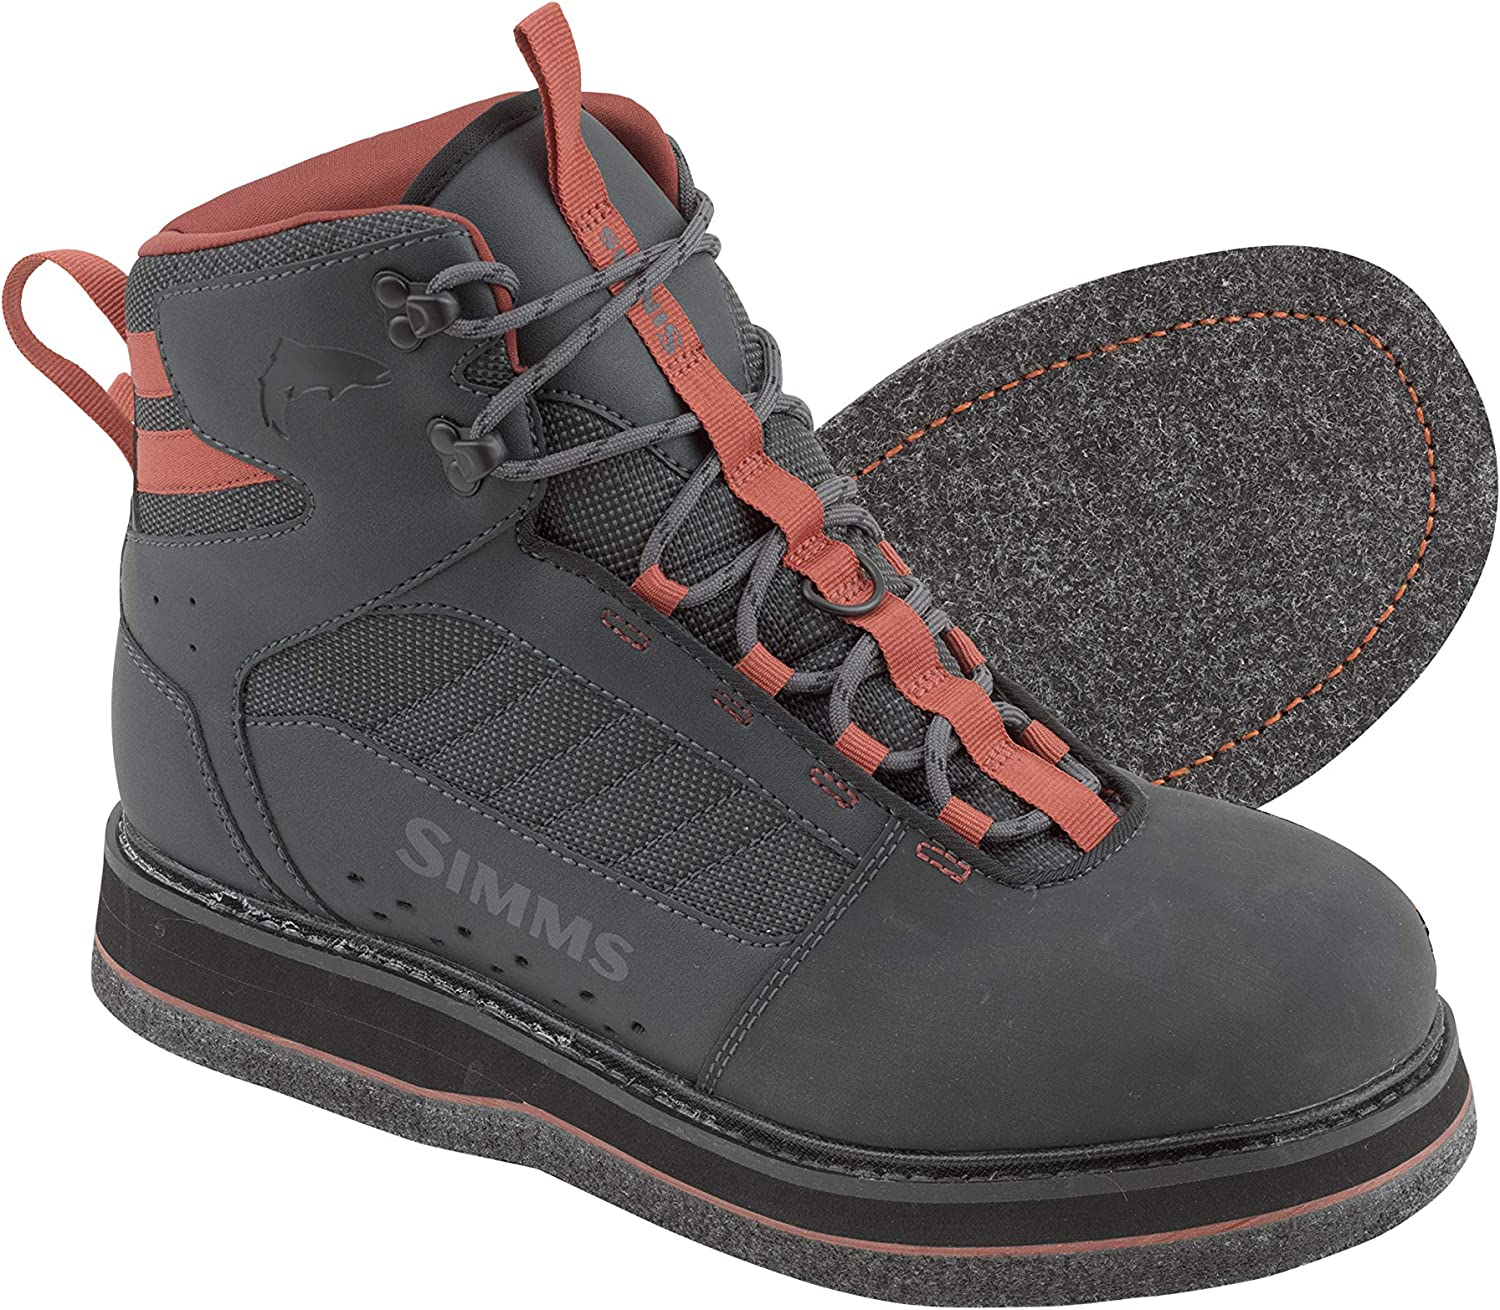 Simms Tributary Felt Sole Wading Boots